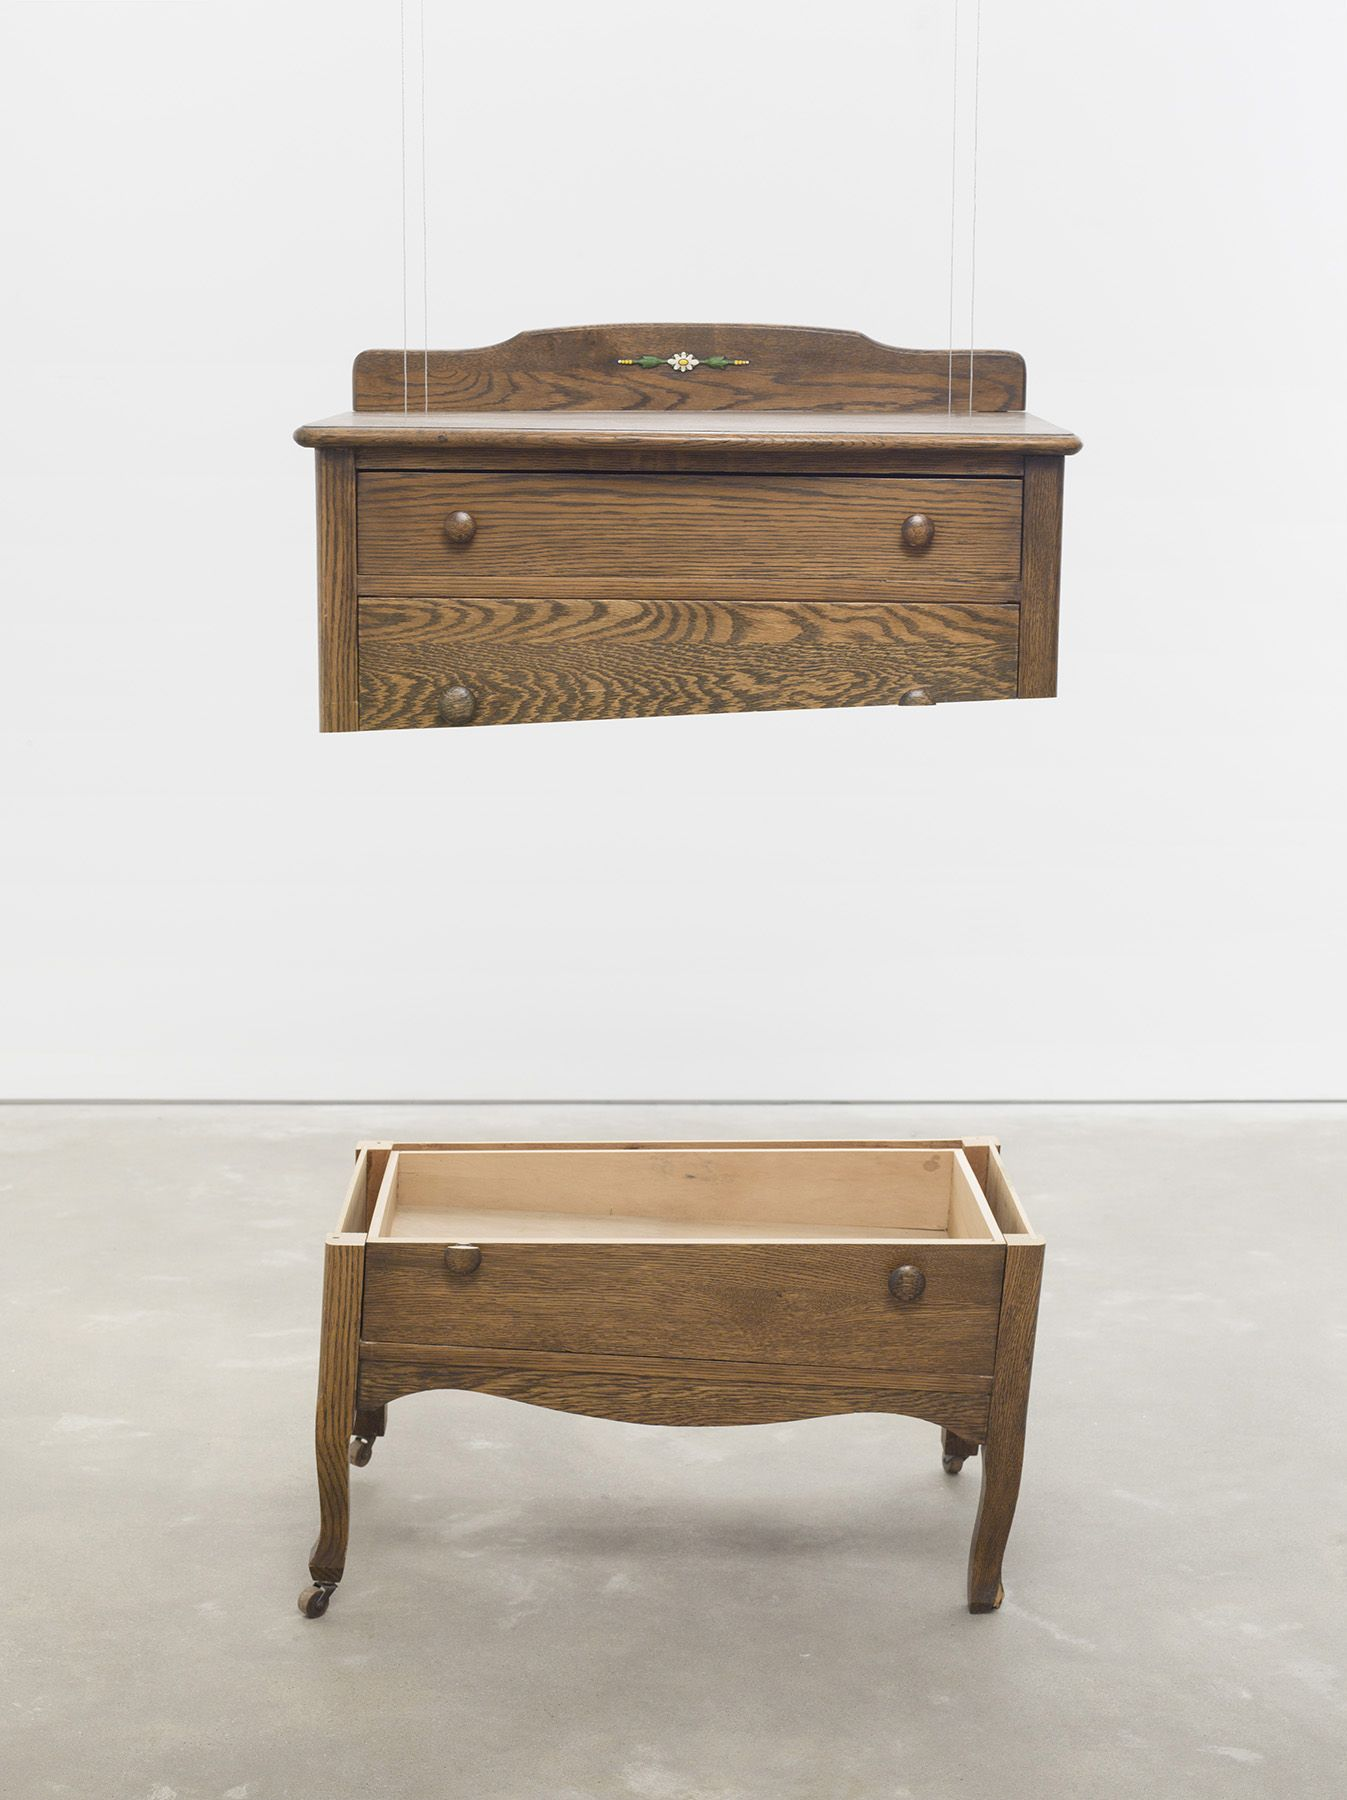 Roy McMakin, A chest of drawers I refinished (and painted the little flower on the back) to put in my sister's room when we were kids, 2011